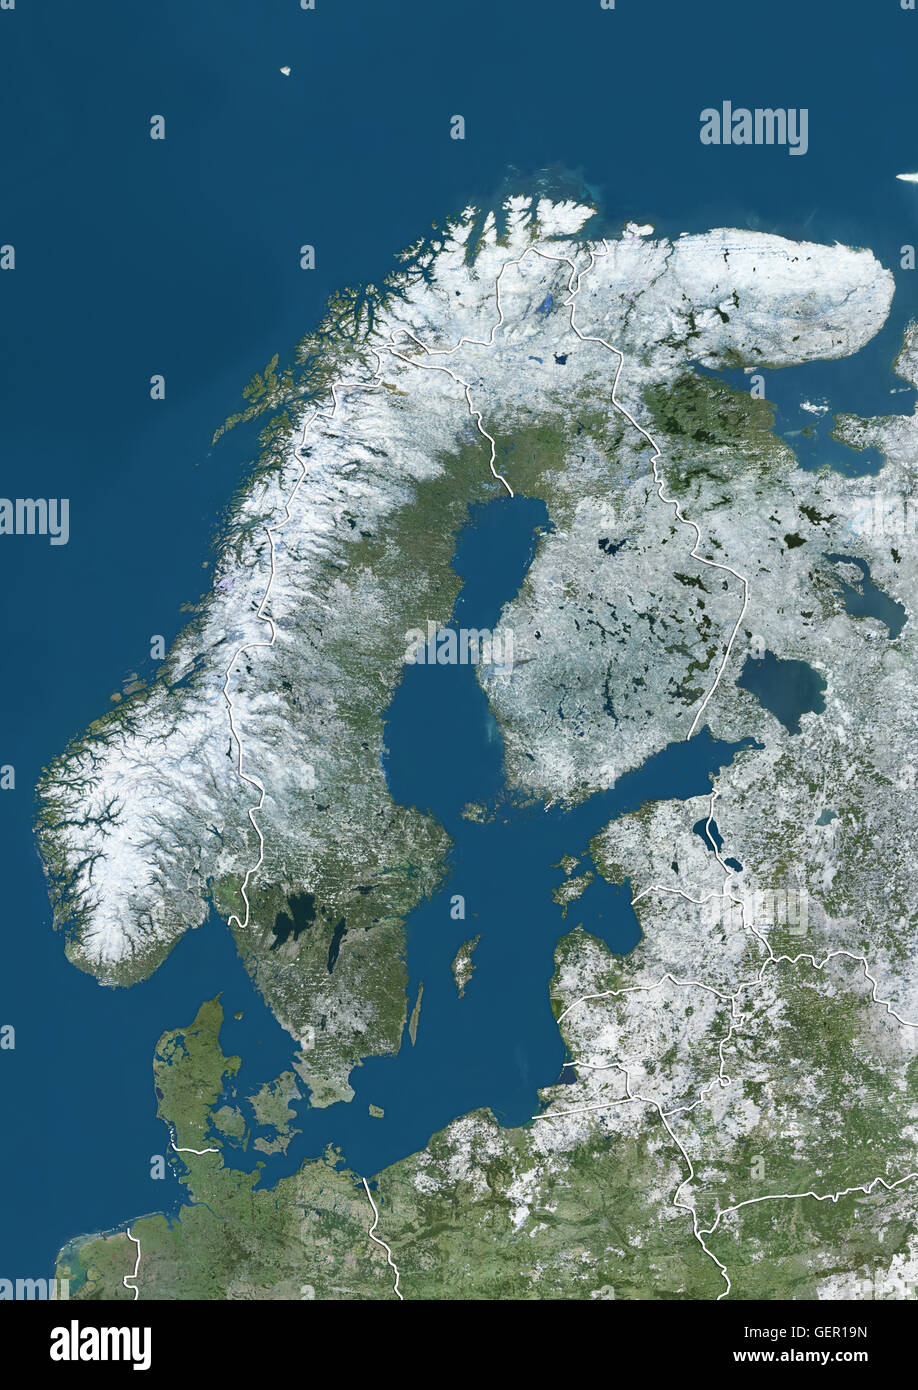 Snow Cover Map Europe.Satellite View Of Northern Europe Showing Scandinavia And The Baltic